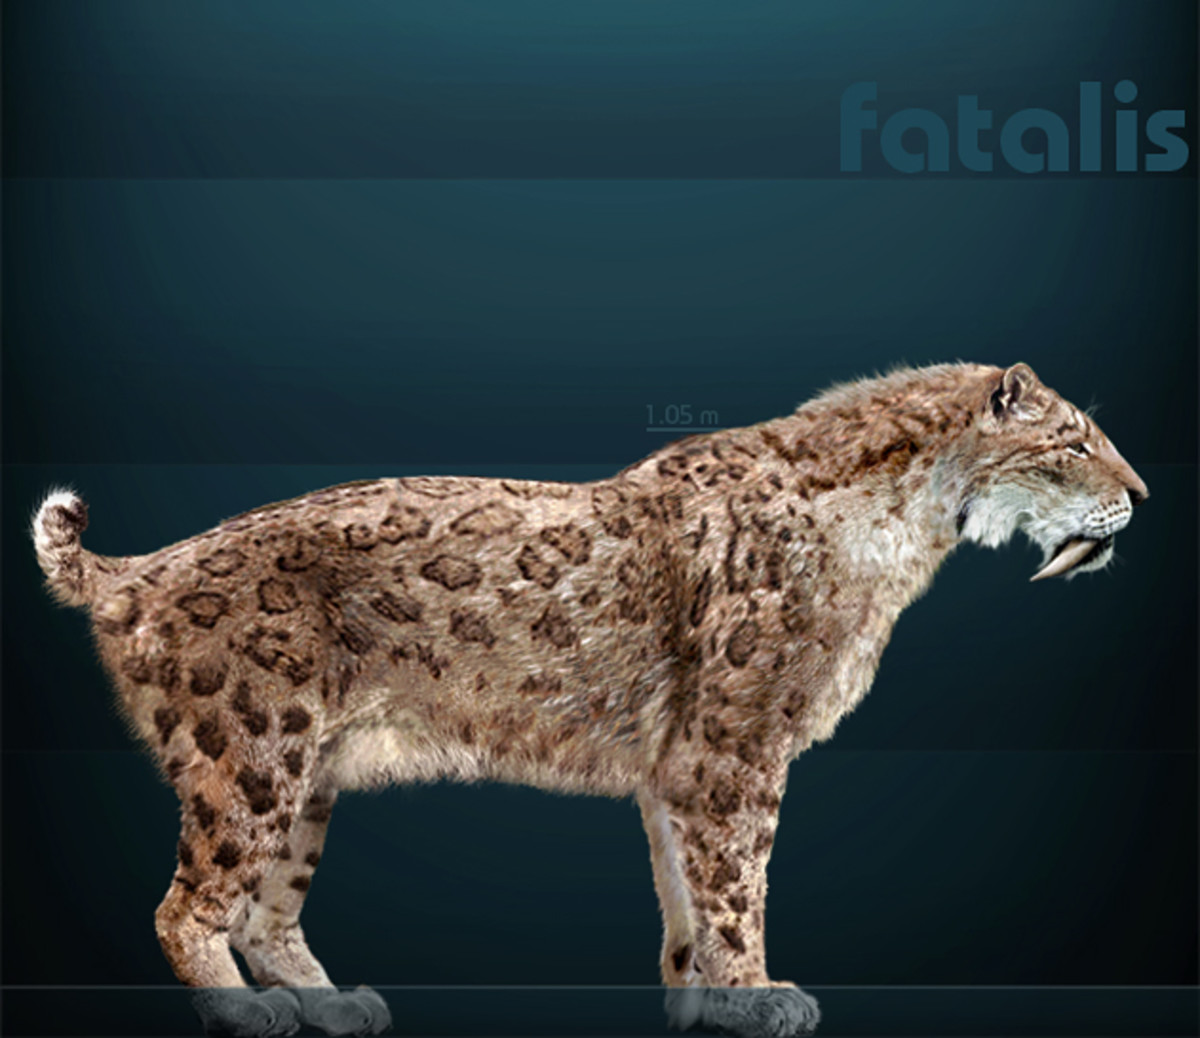 This is Smilodon fatalis, the subspecies of smilodon which inhabited most of North America. The subspescies featured in this hub is Smilodon populator.